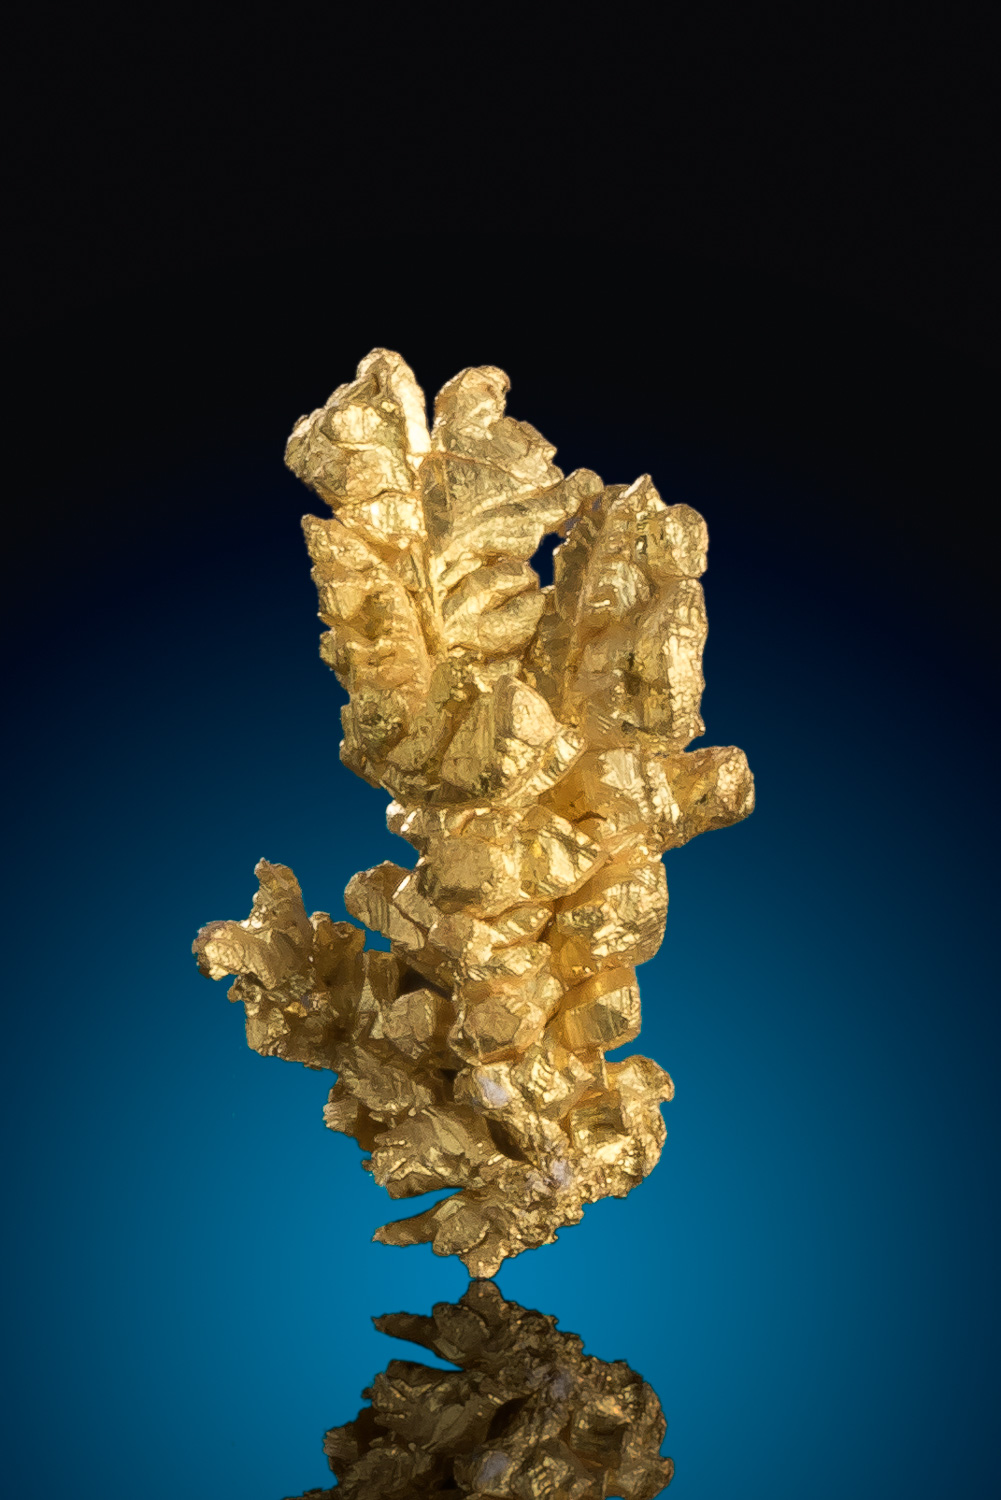 Sharp Faceted Gold Crystal Cluster - Diltz Gold Mine, Mariposa